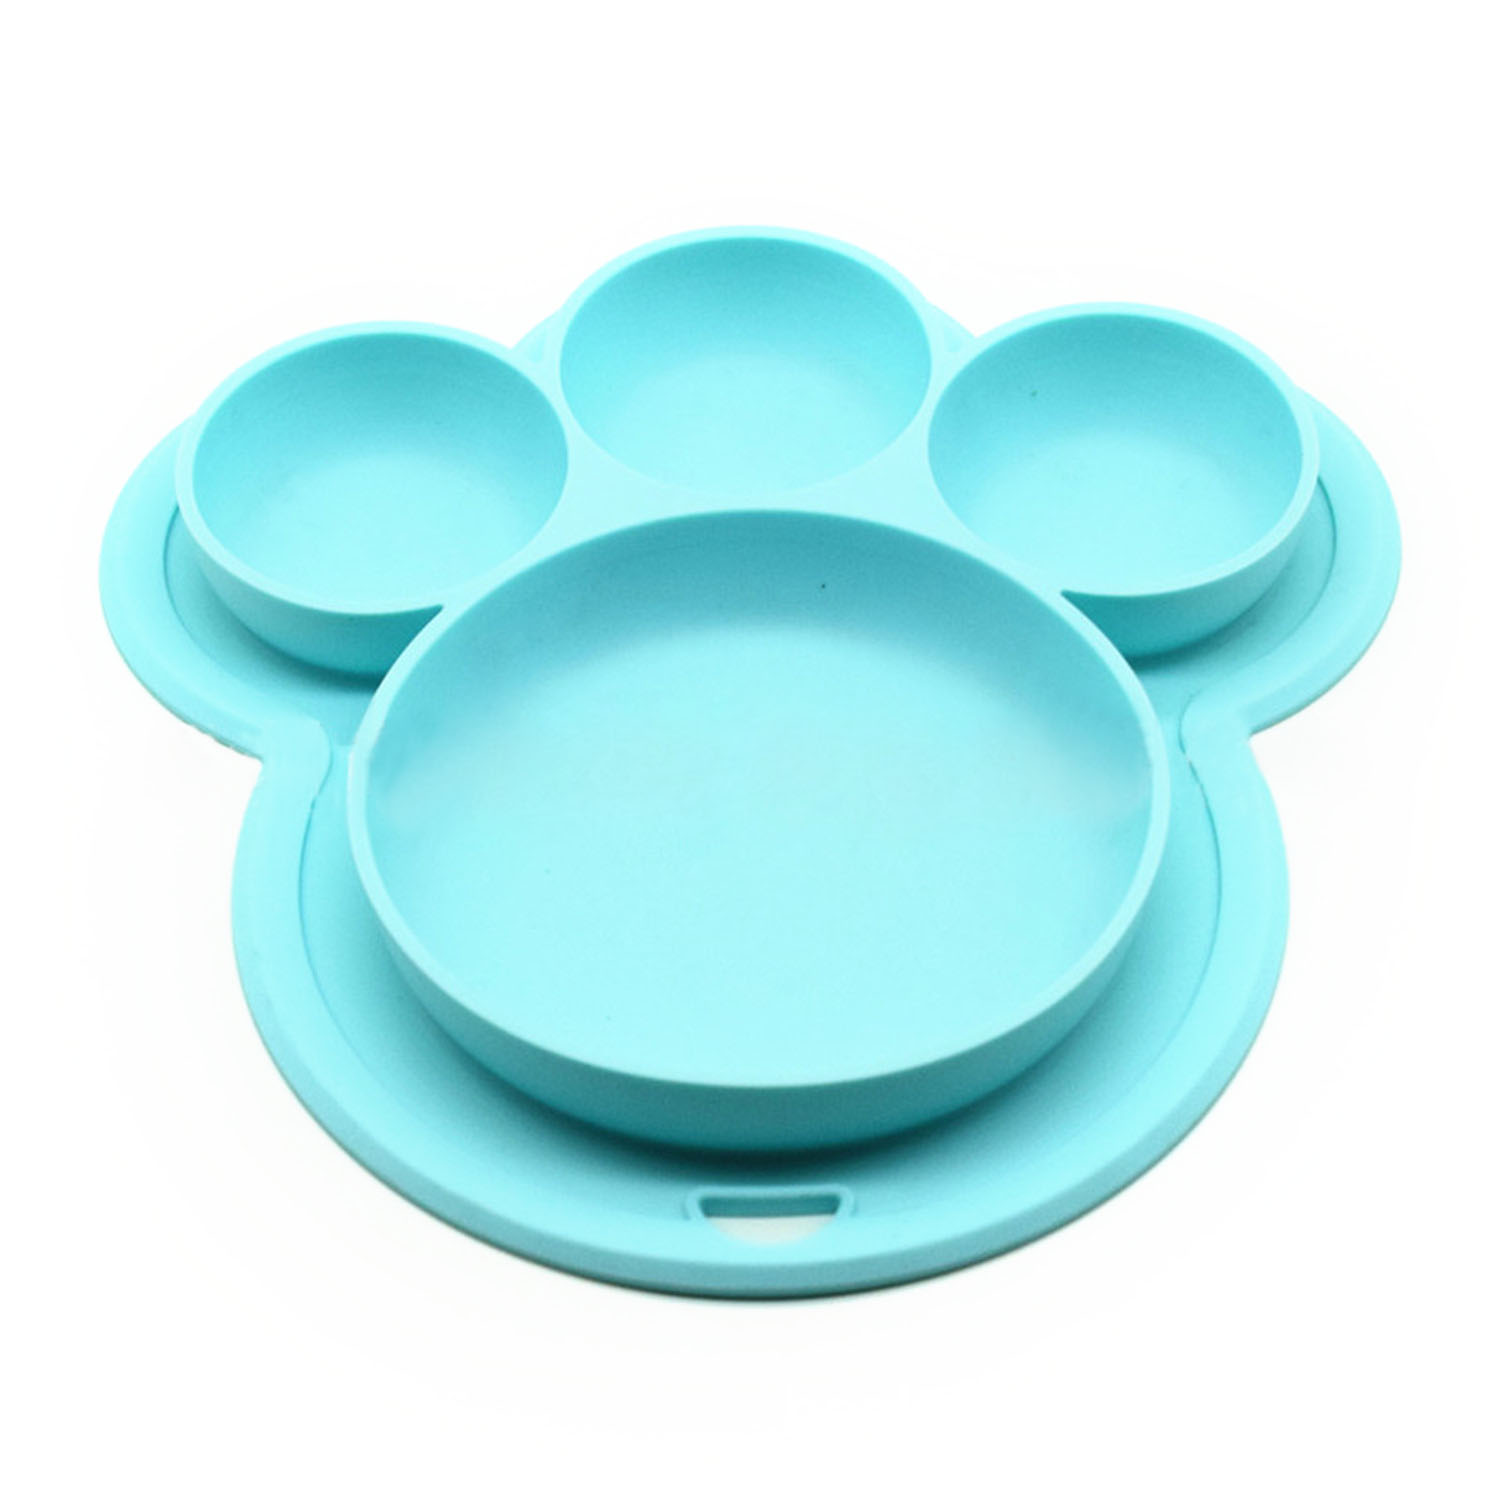 Outgeek Kids' Plate Cute Bear Paw Shape Suction Silicone Food Fruits Divided Plate Dinner Plate Dish Bowl... by Outgeek